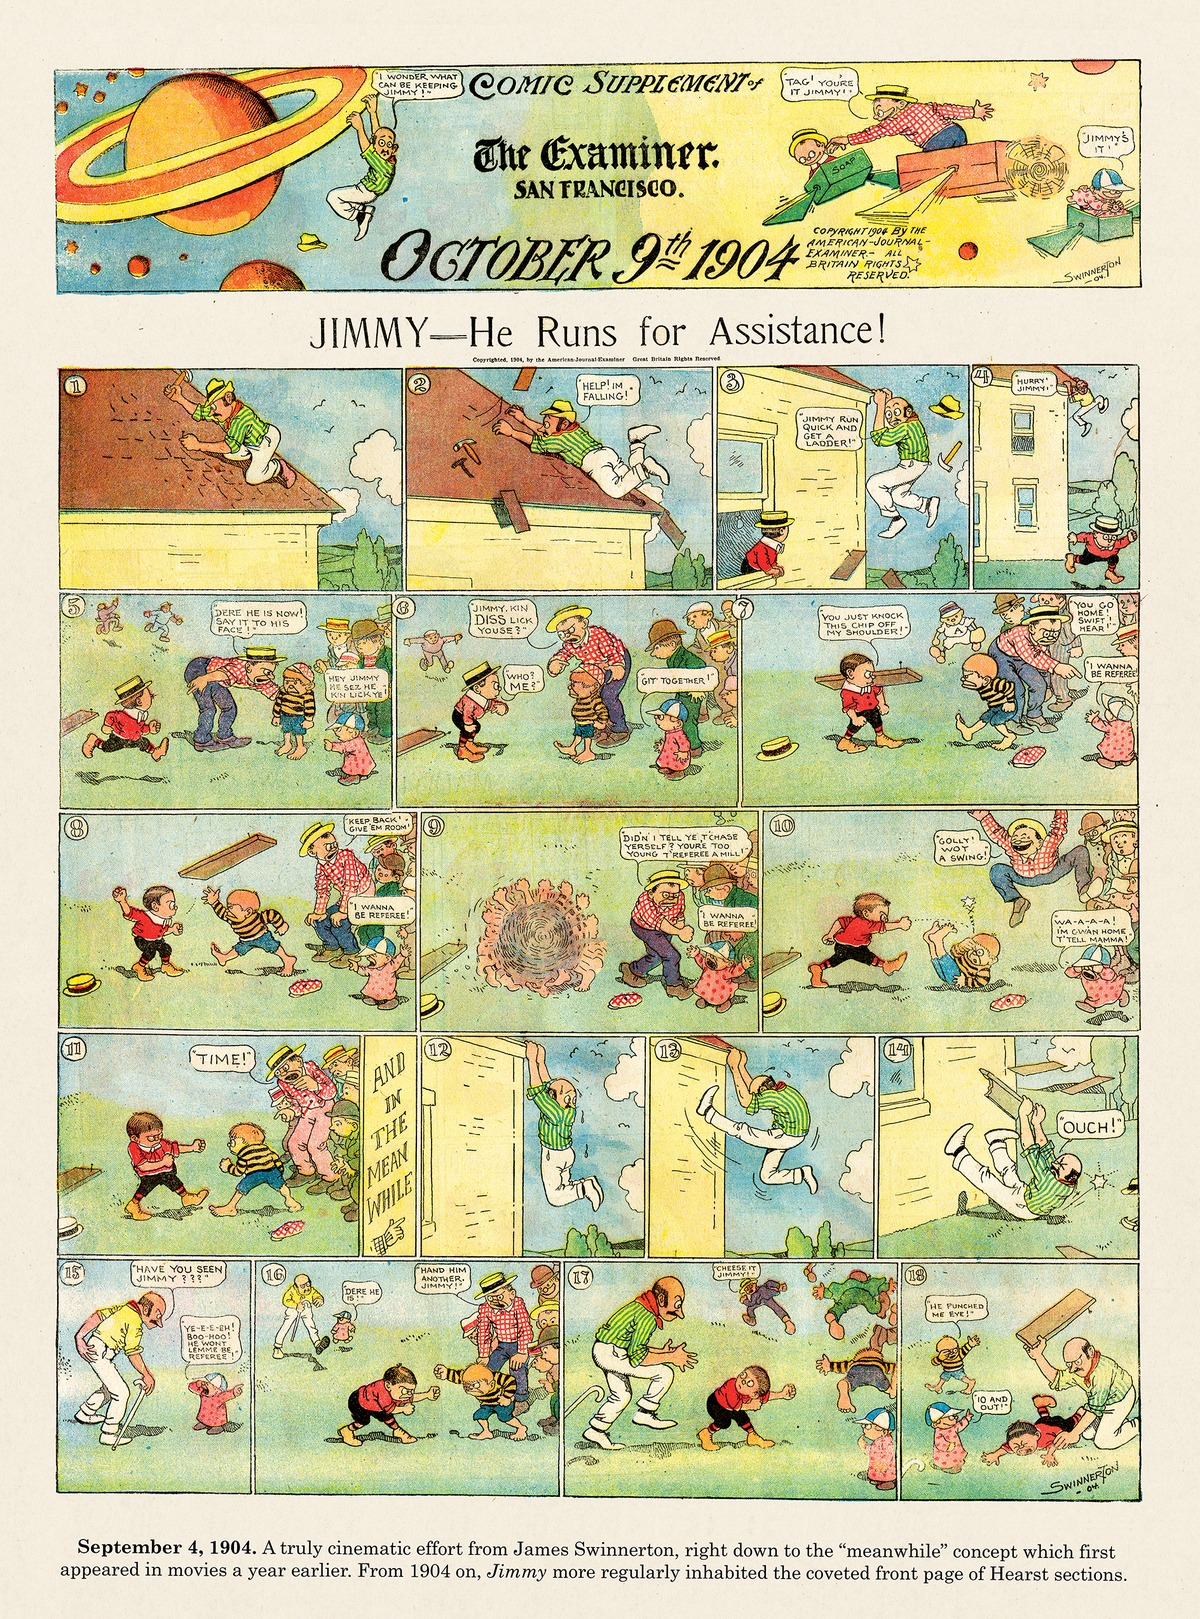 Origins of the Sunday Comics Comic Strip for July 20, 2014